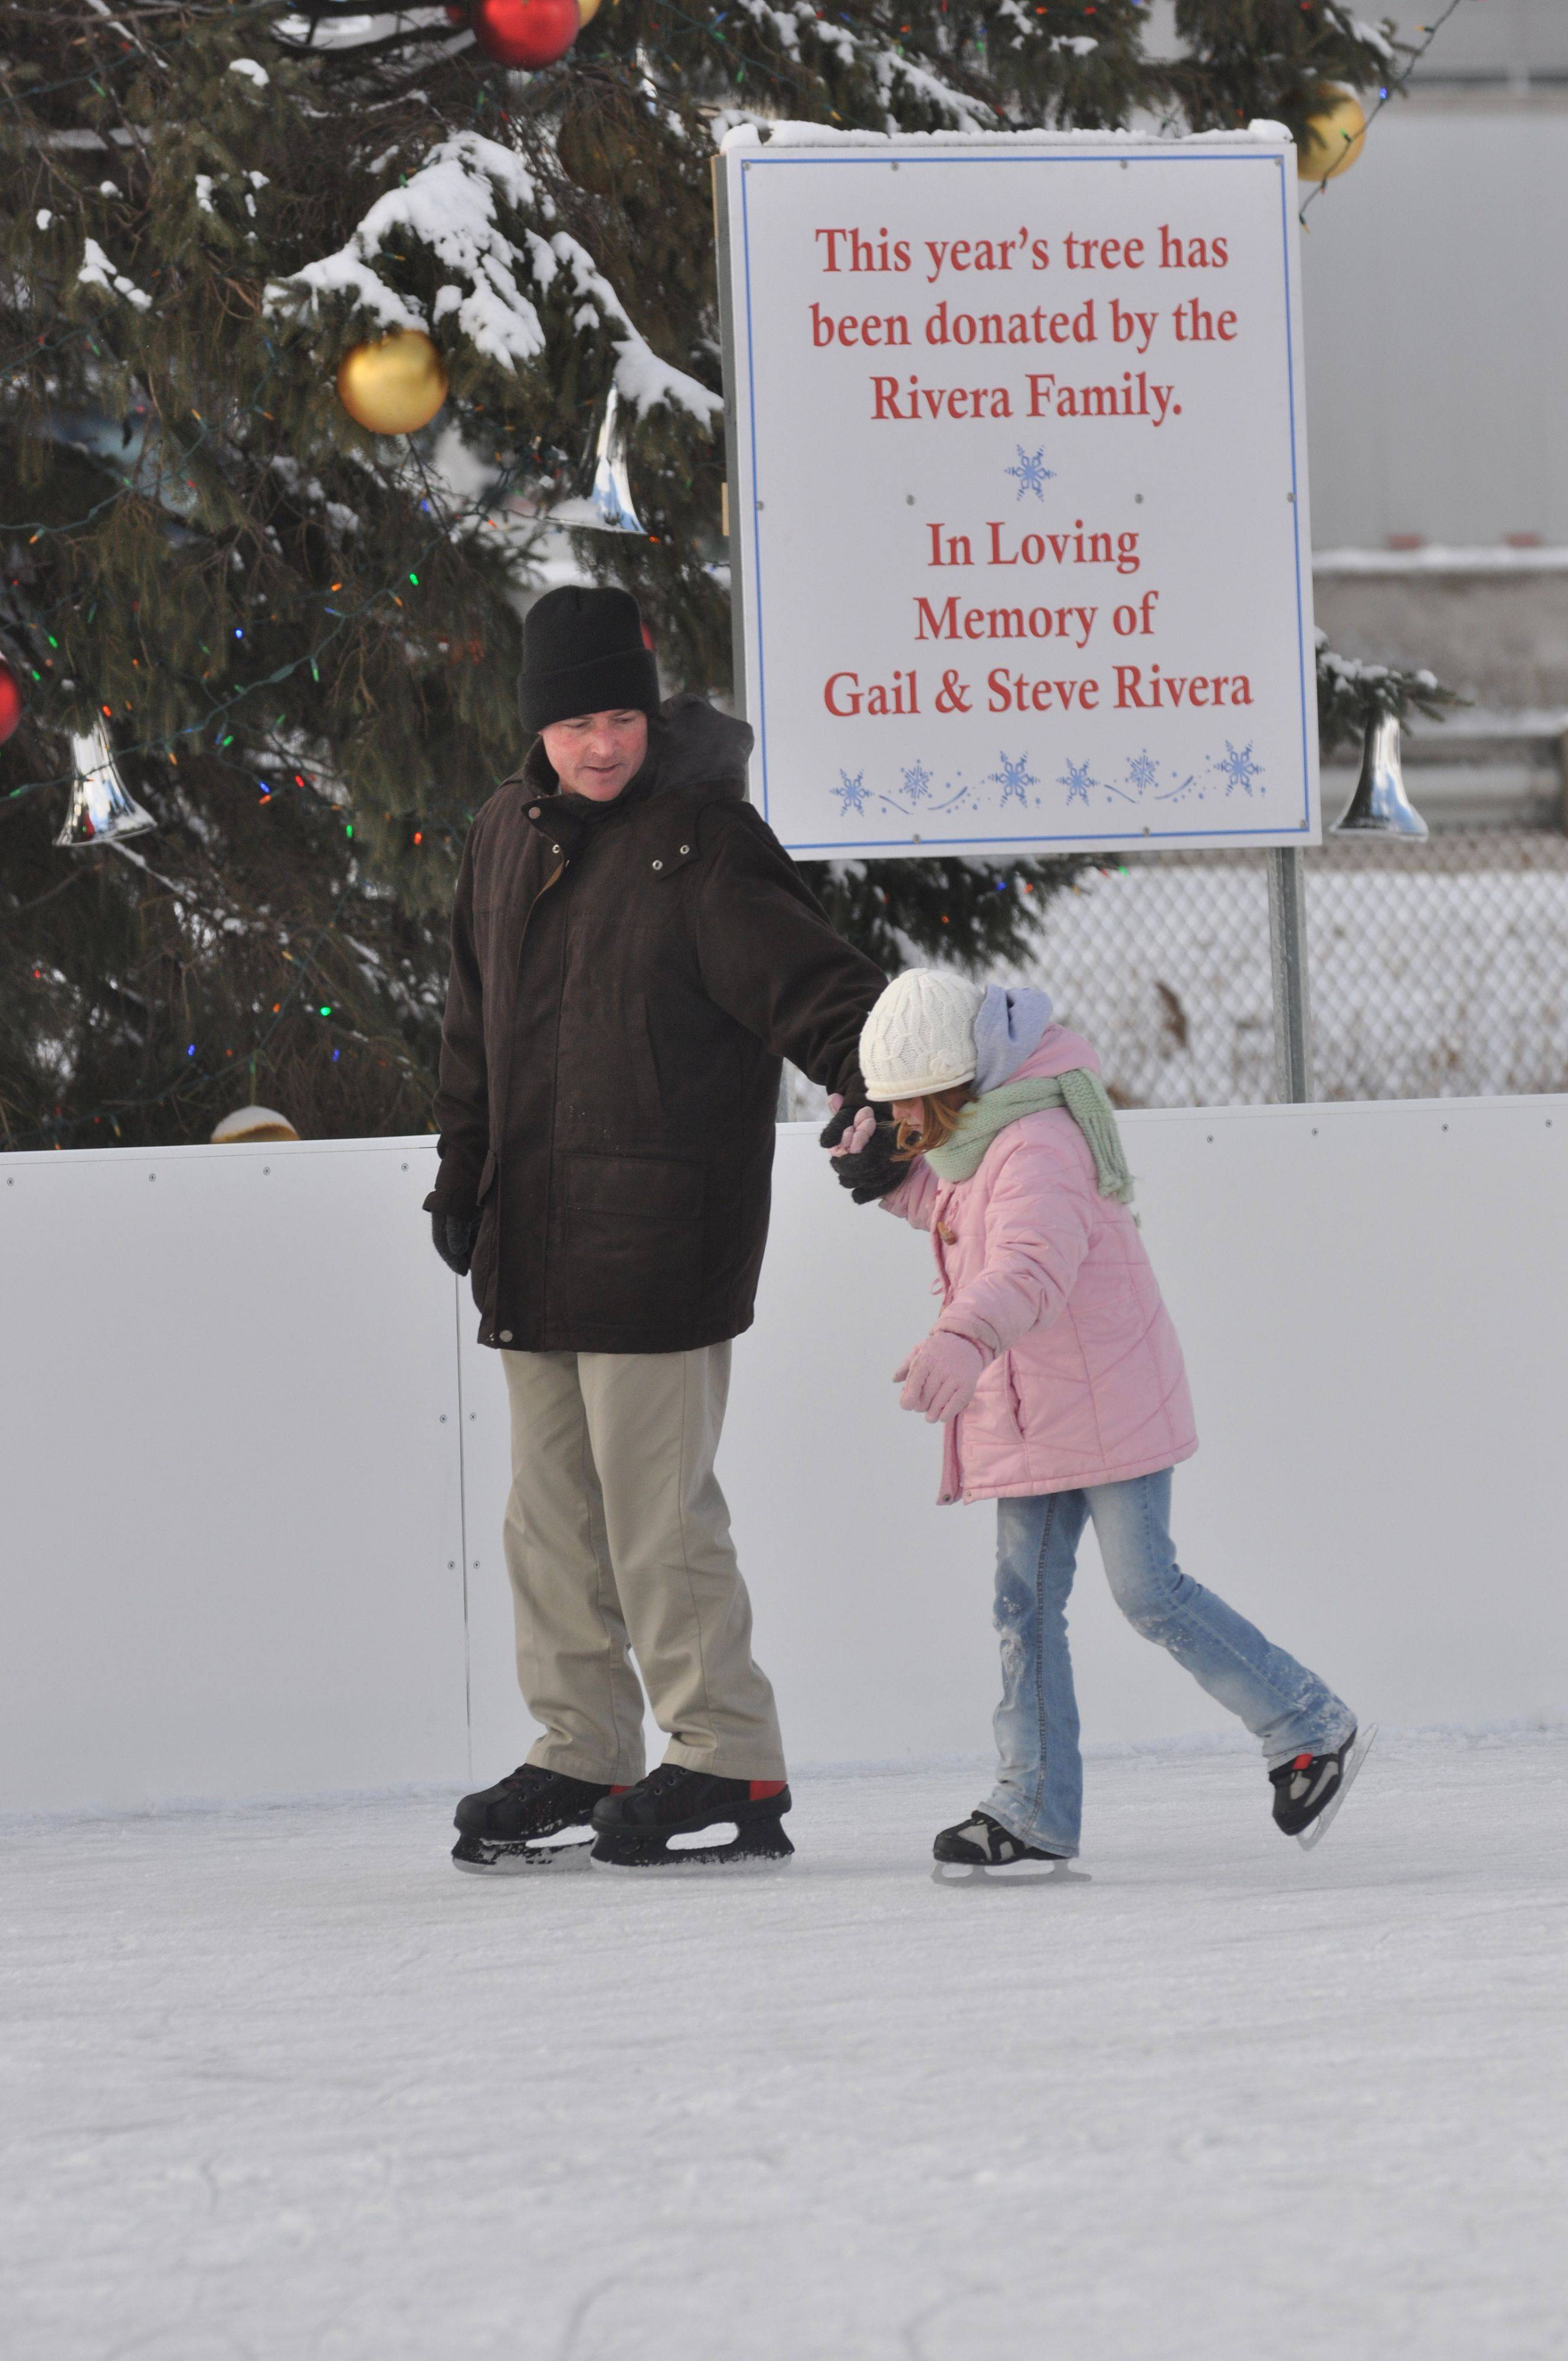 Sydney Cesare, 7, and her father Michael stop by the new outdoor skating rink in Rosemont during their stay at Embassy Suites.